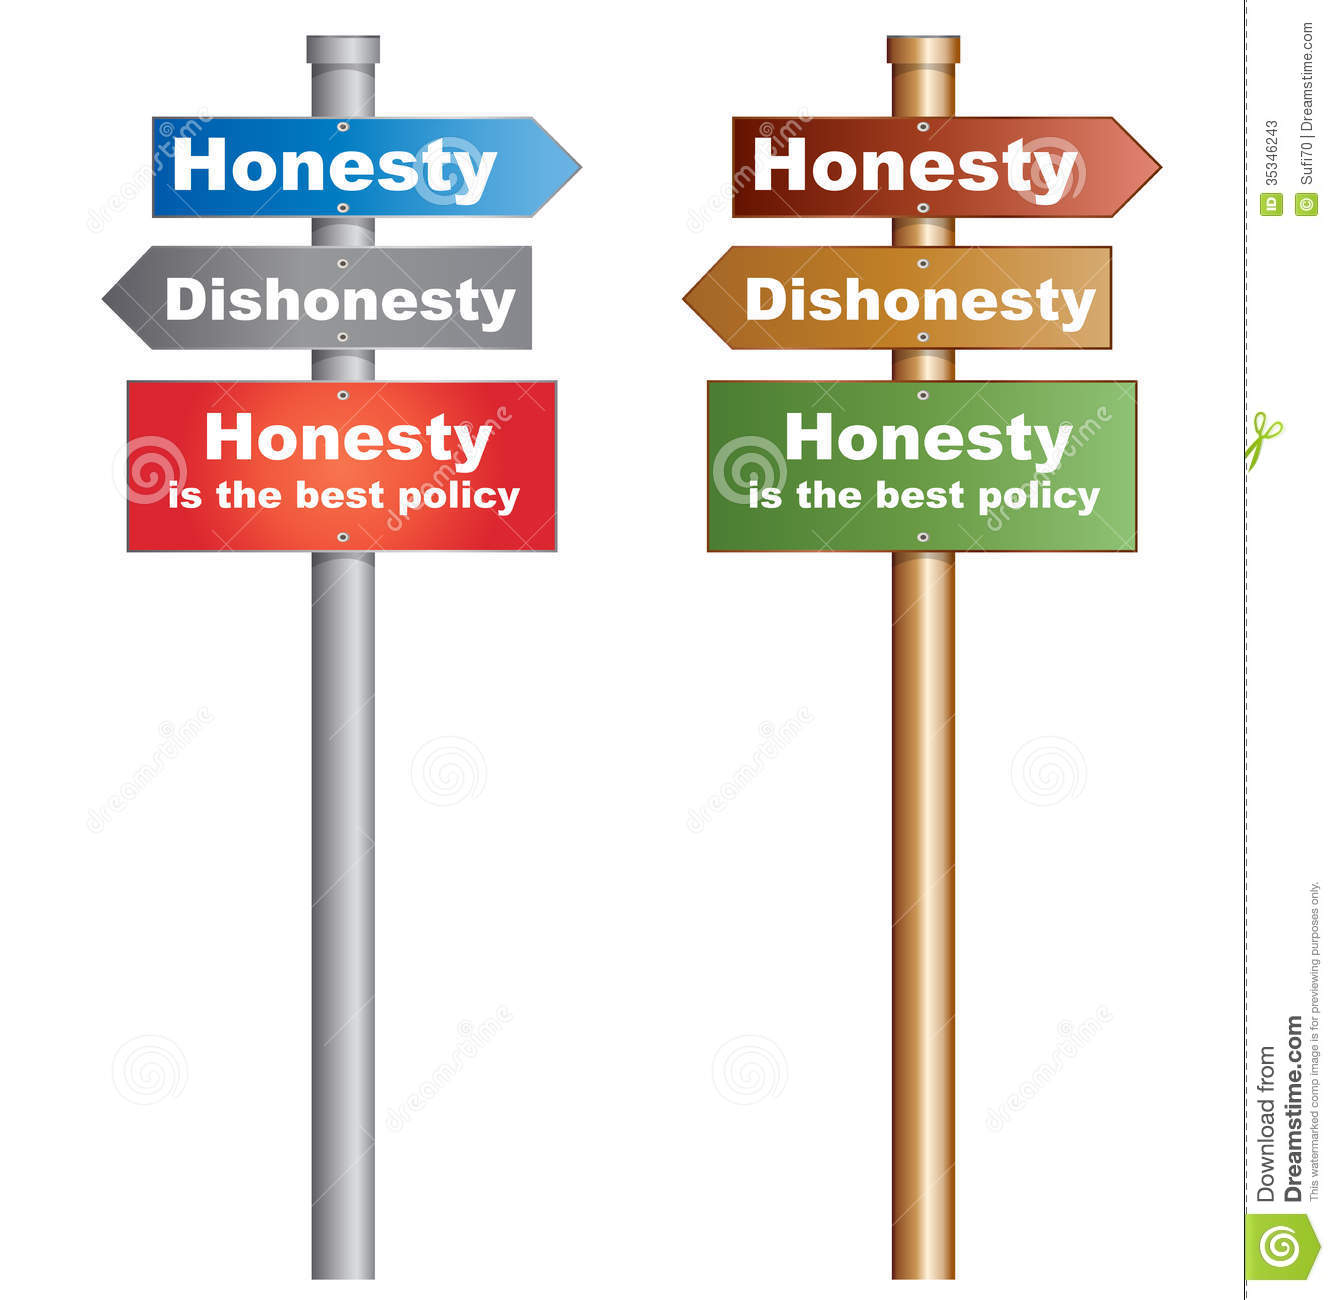 honesty is the best policy essay honesty is the best policy in  honesty is the best policy in hindi essay on swachh essay for you essay honesty is